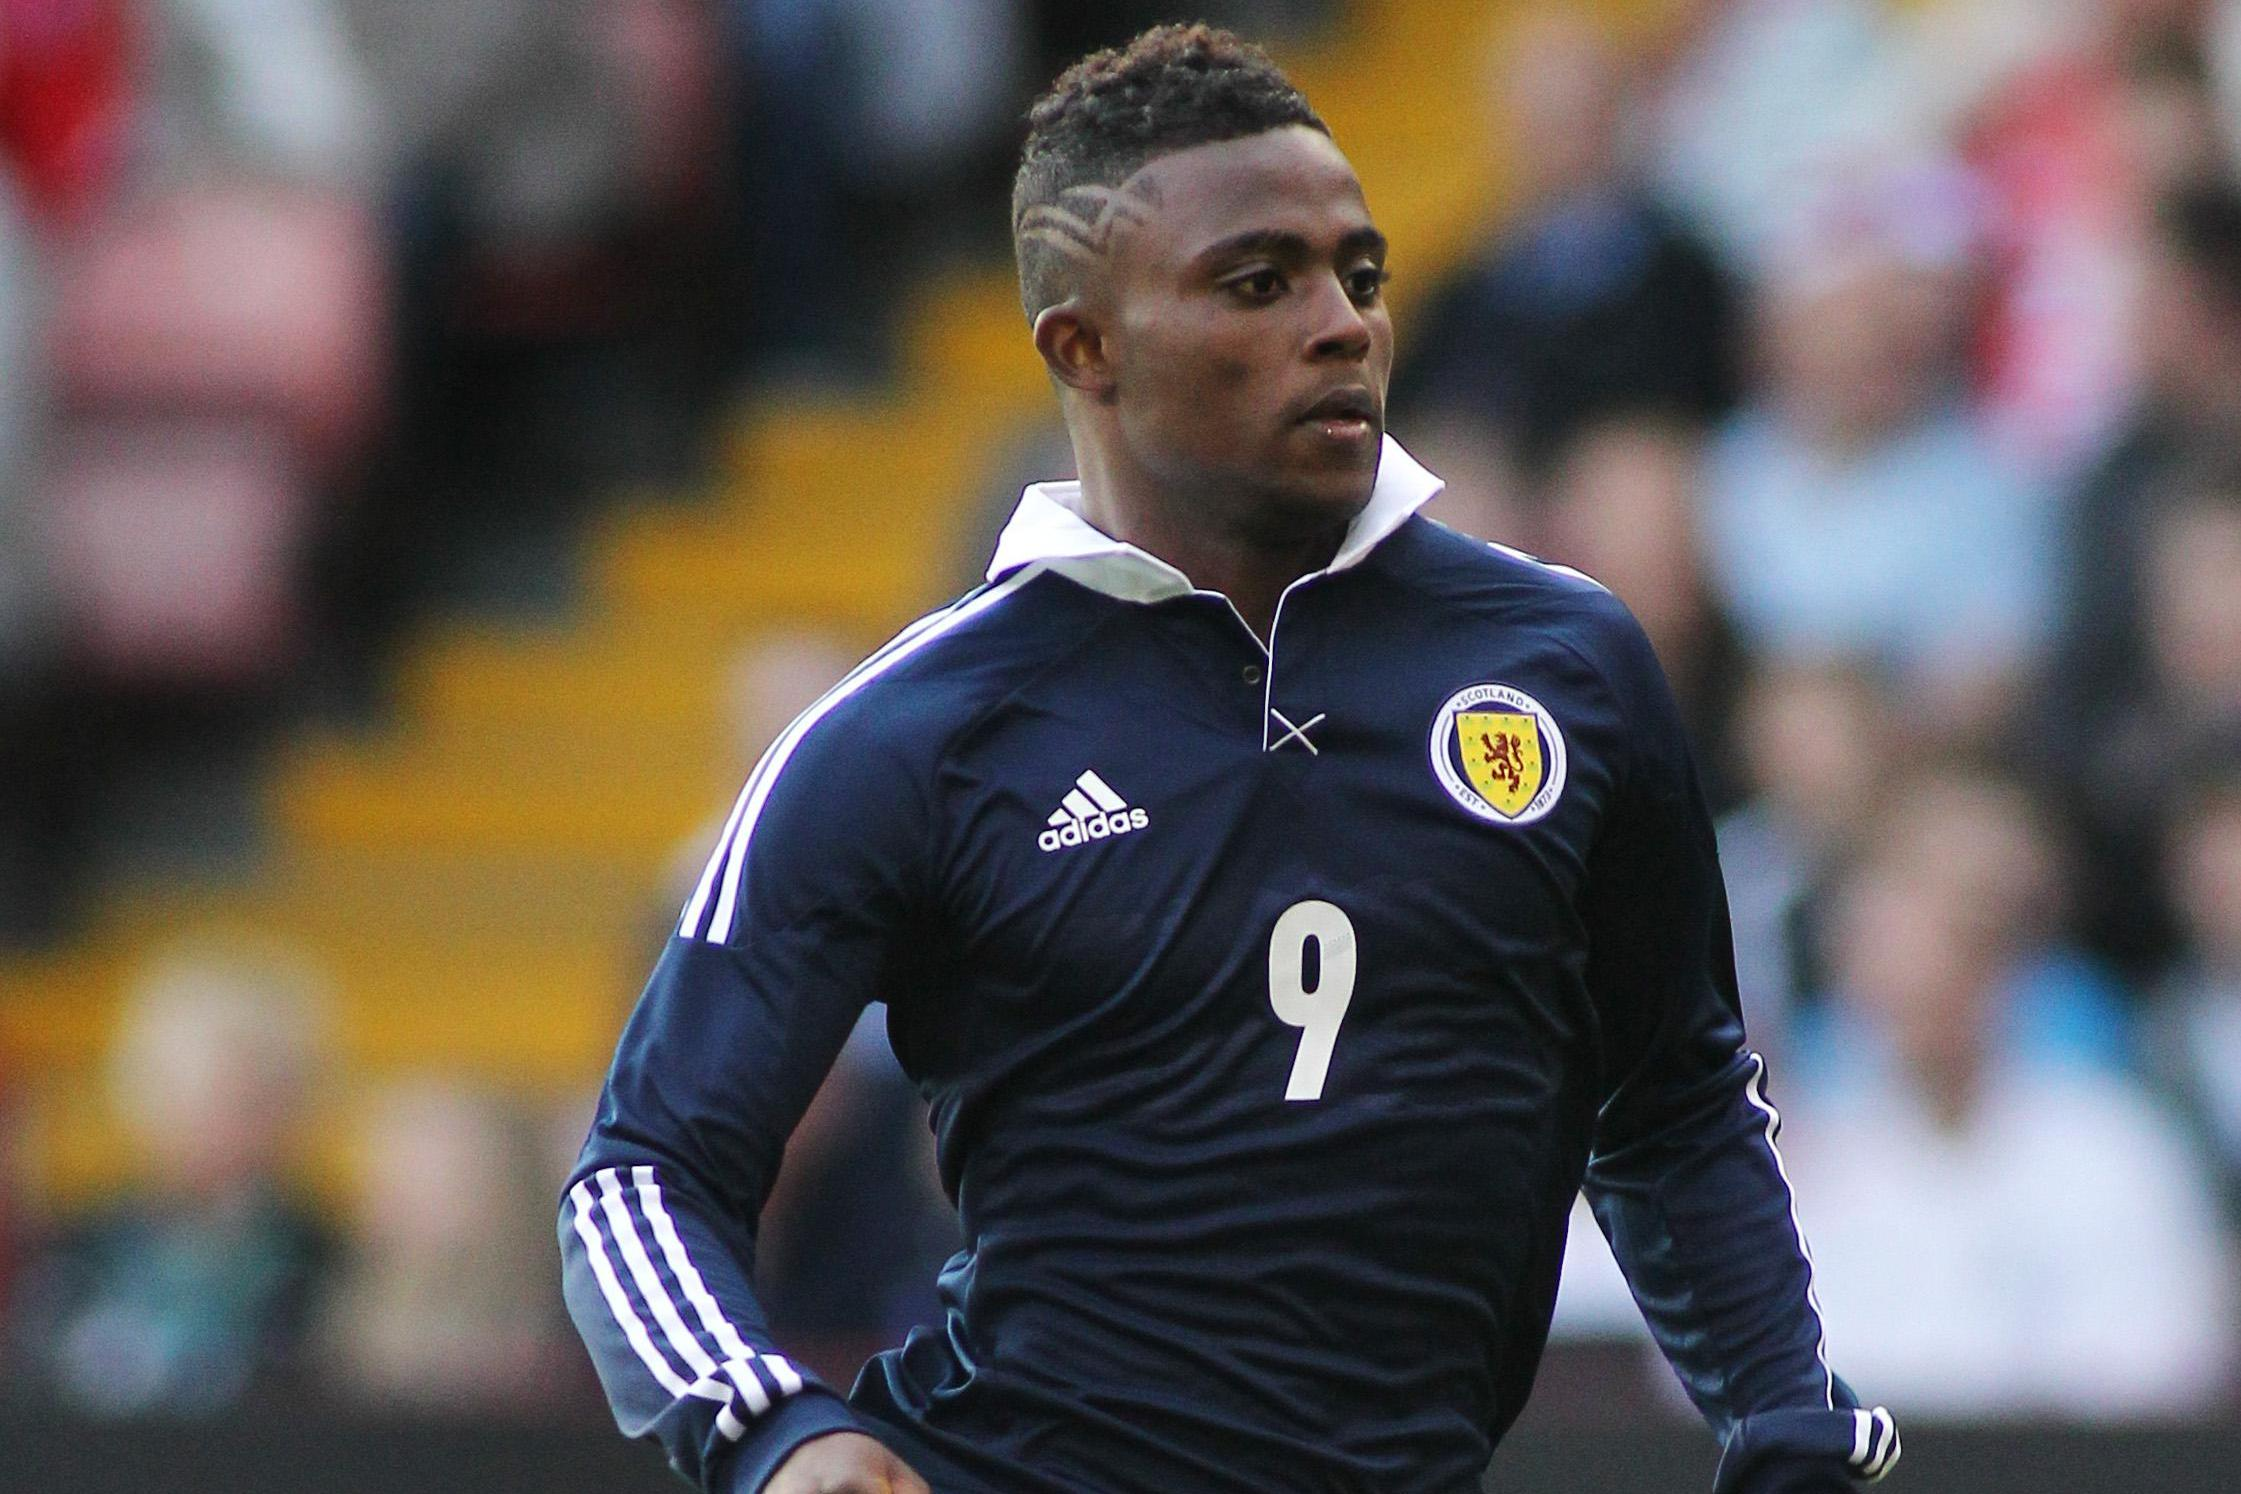 Former Celtic And Hibs Player Islam Feruz Admits Driving Flash Porsche While Banned The